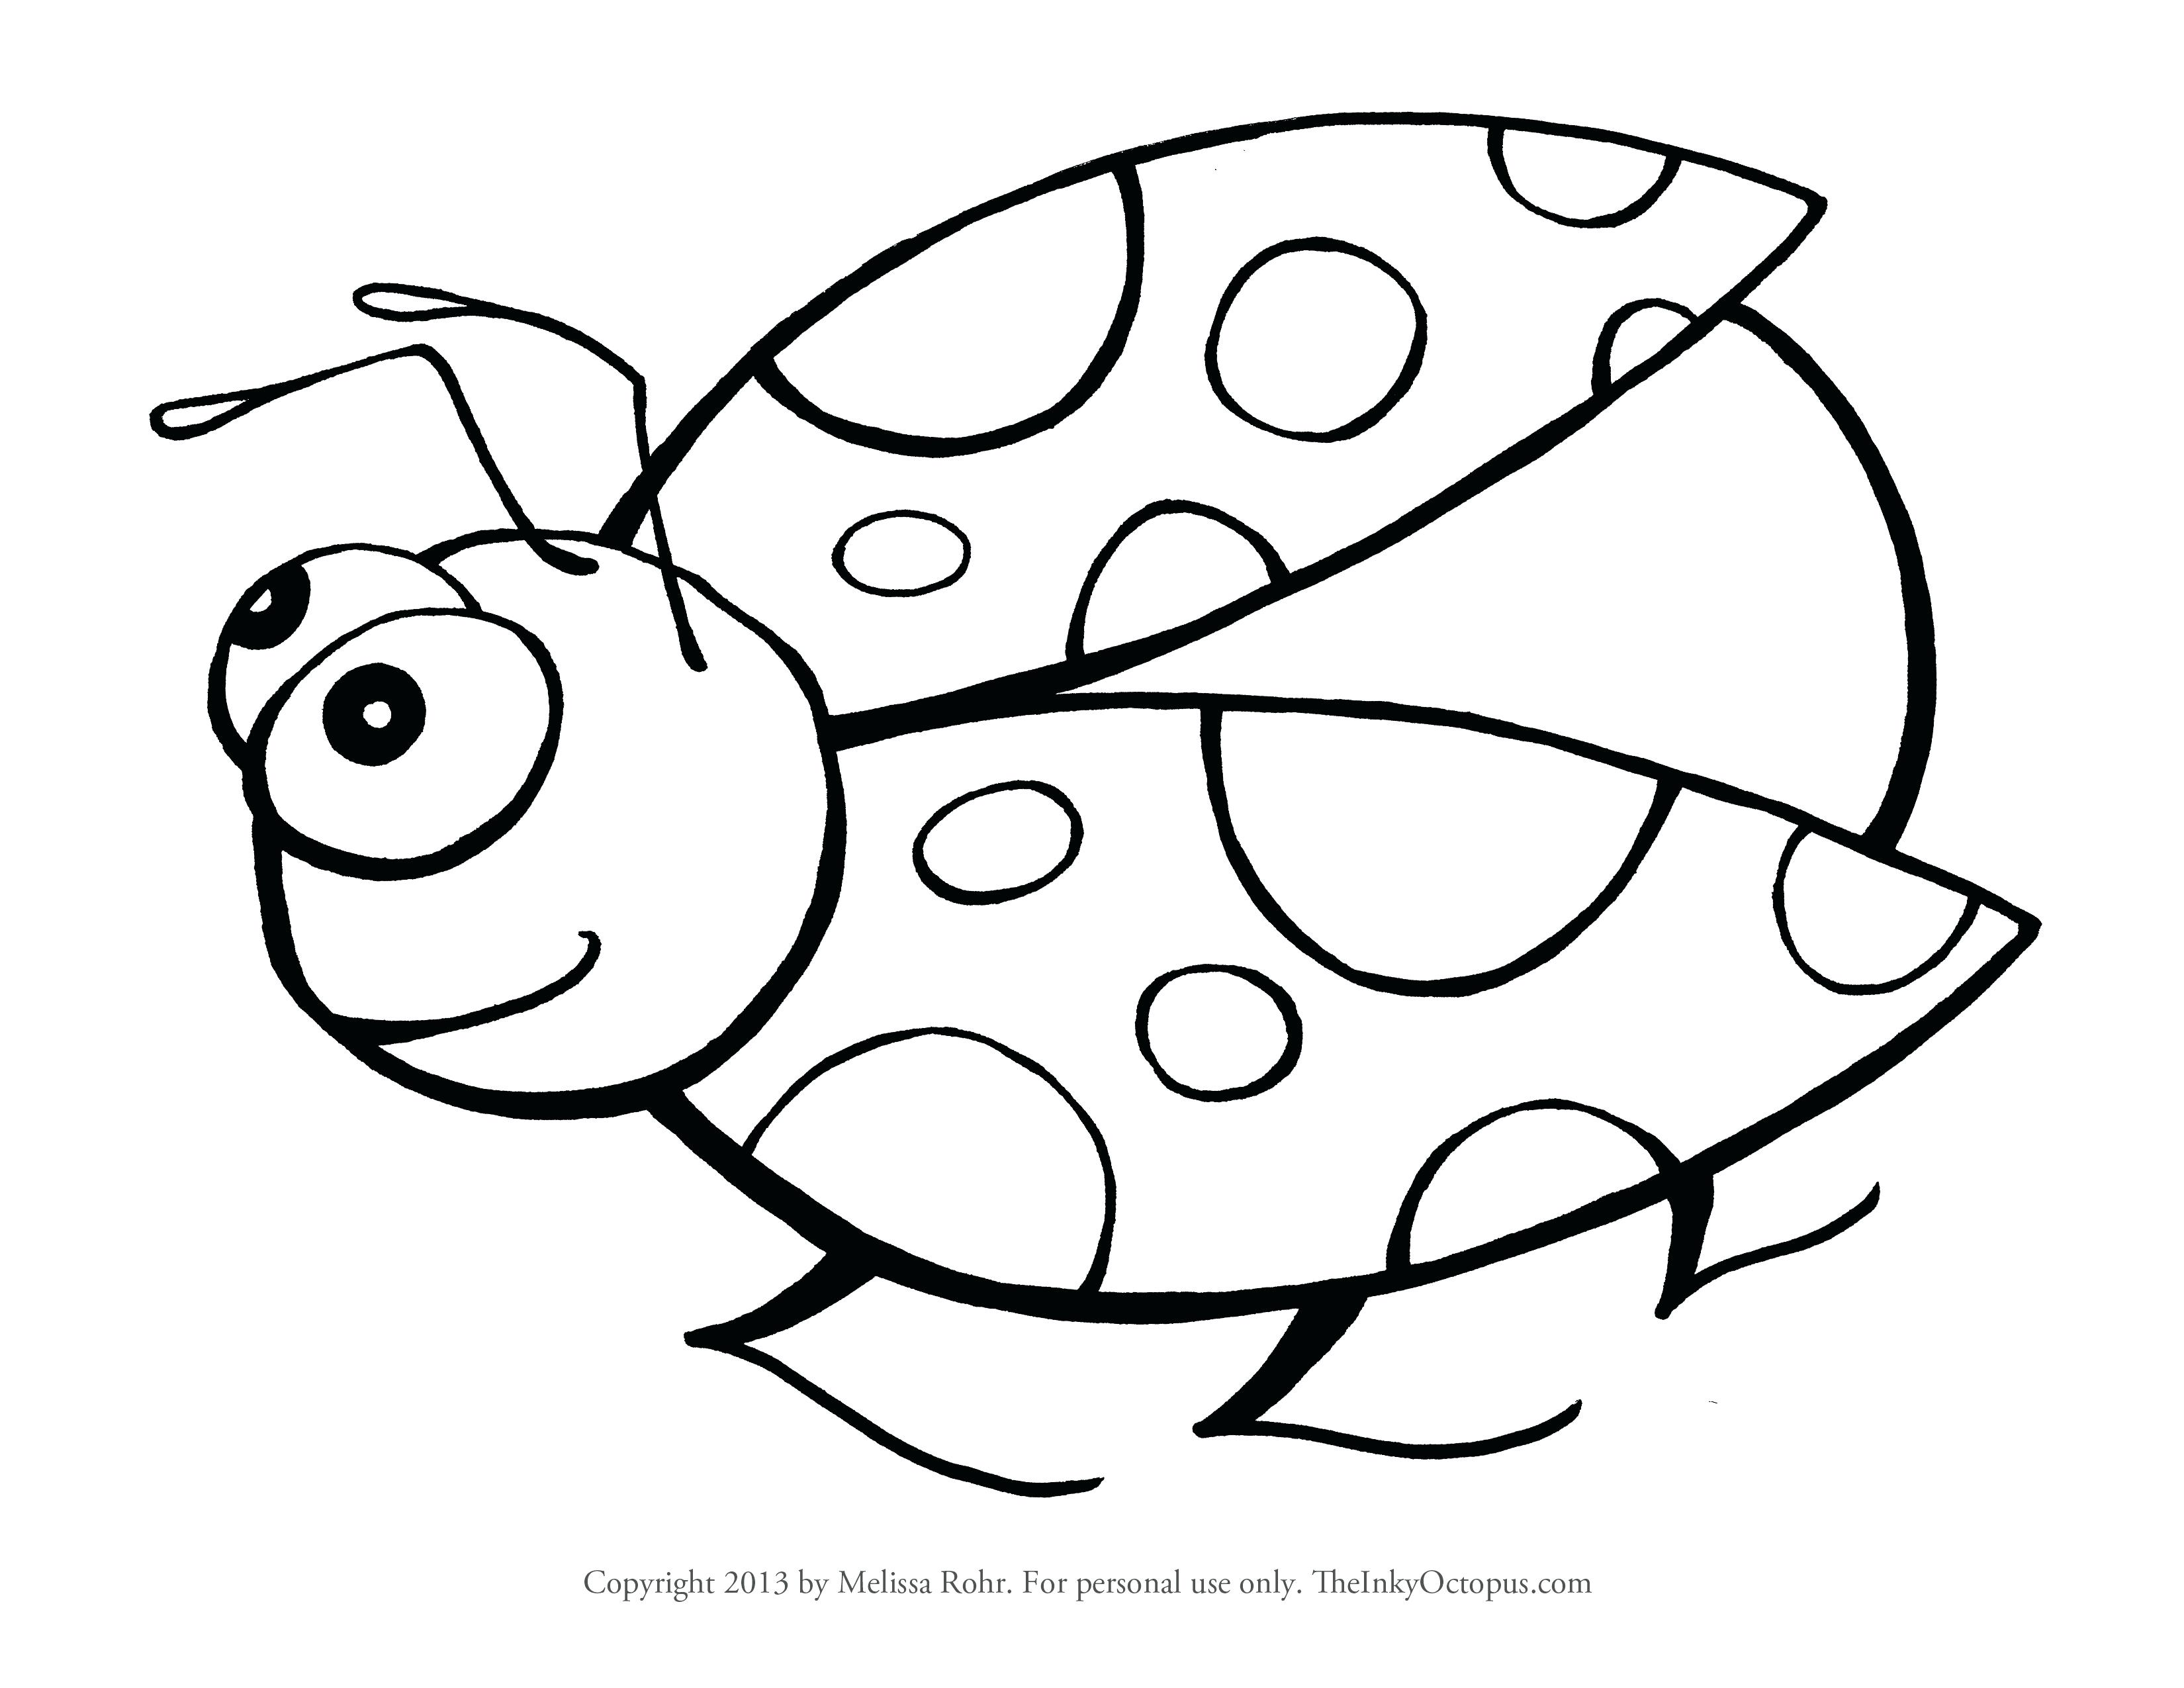 Alien Spaceship Drawing at GetDrawings.com   Free for personal use ...